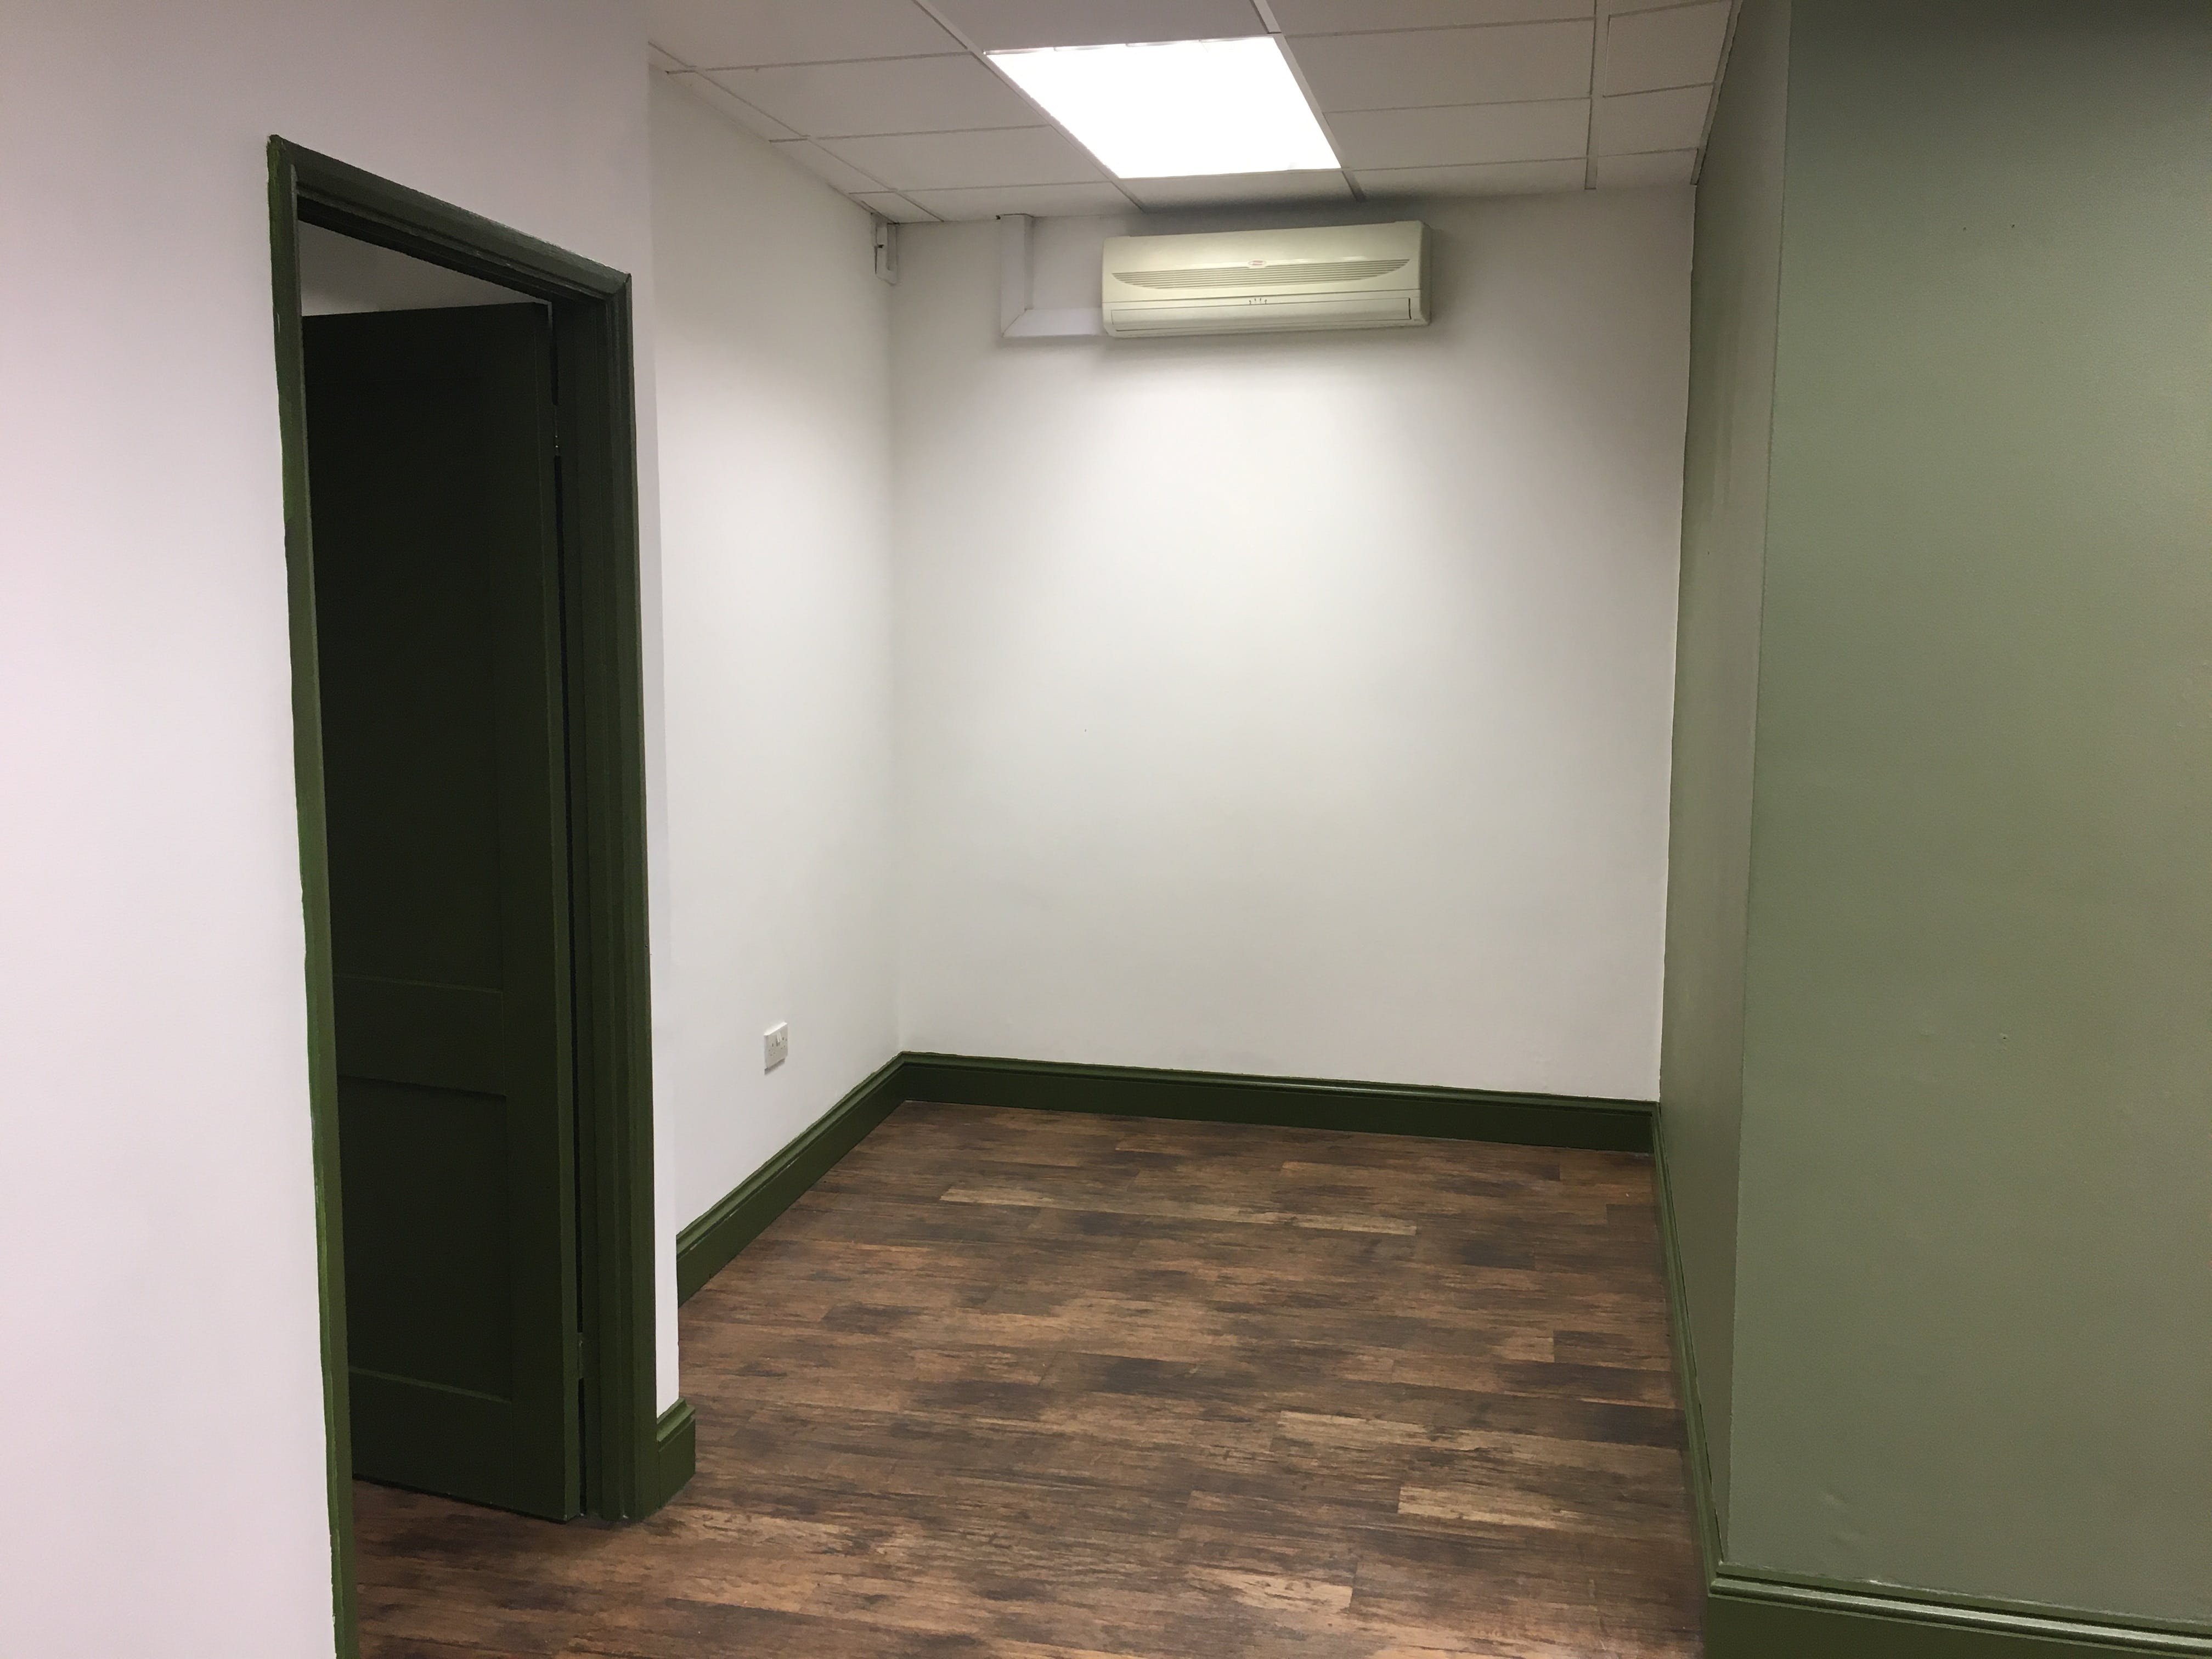 4A Cleary Court, Cleary Court, Woking, Retail To Let - IMG_1781.JPG